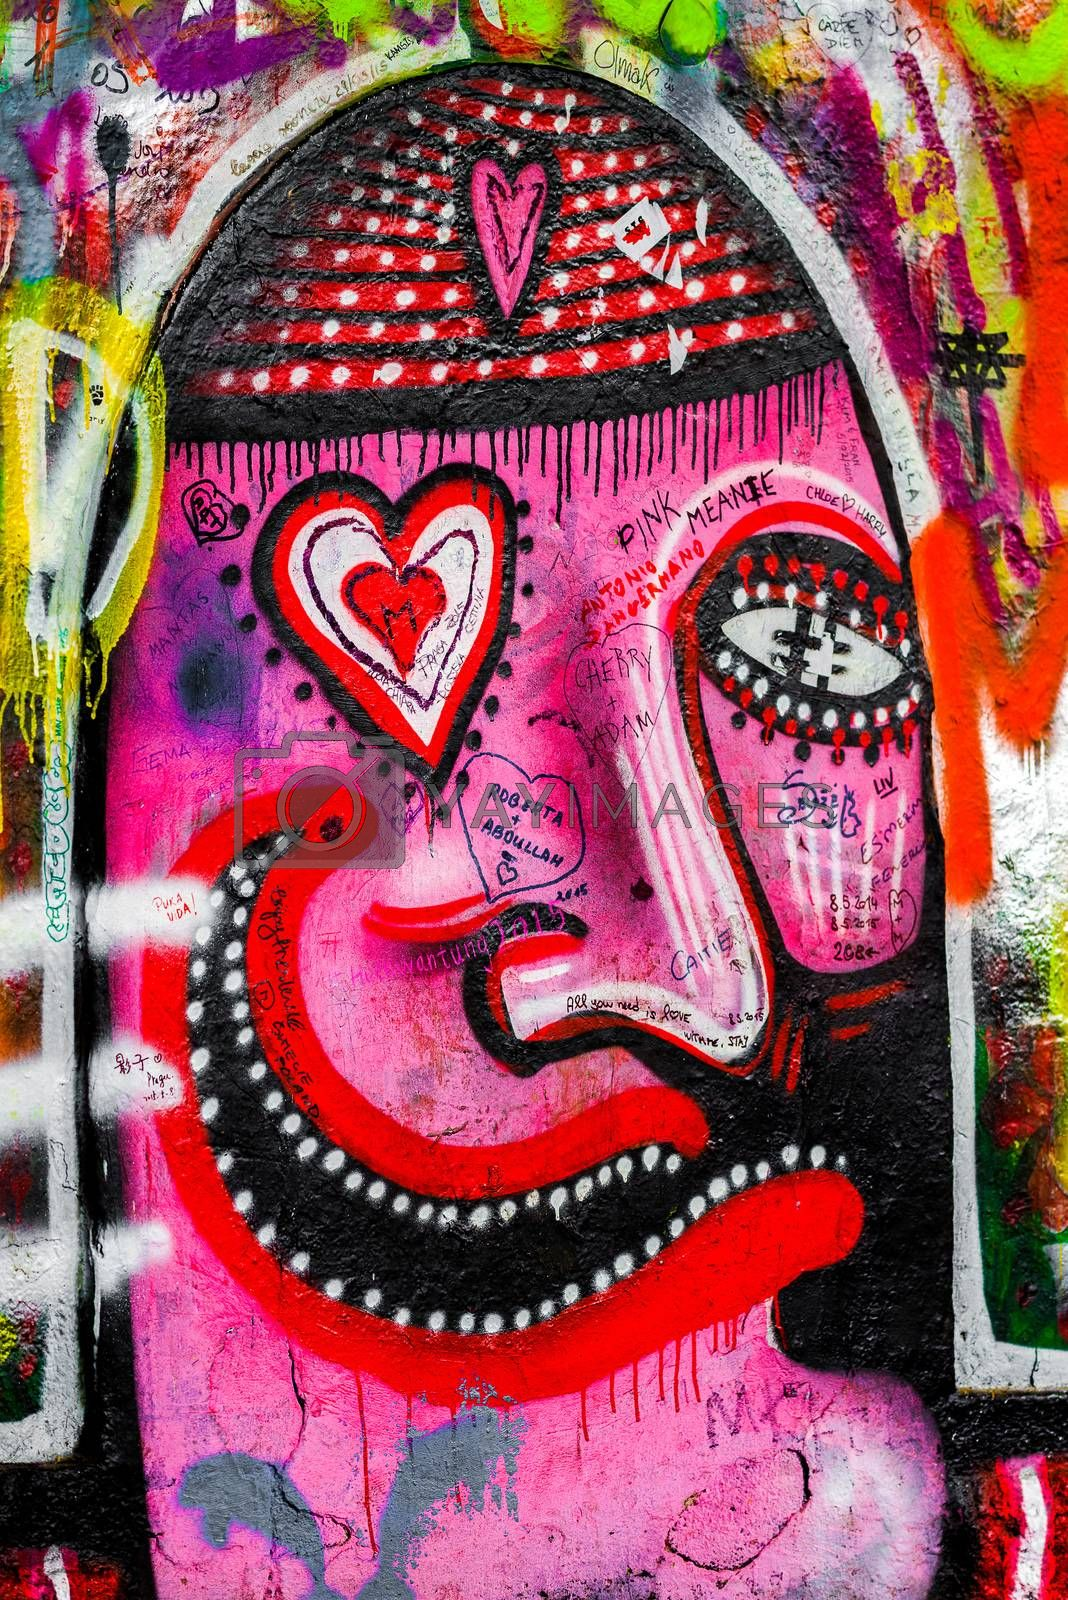 PRAGUE, CZECH REPUBLIC - MAY 21, 2015: Detail from Famous John Lennon Wall on Kampa Island in Prague filled with Beatles inspired graffiti and lyrics since the 1980s.